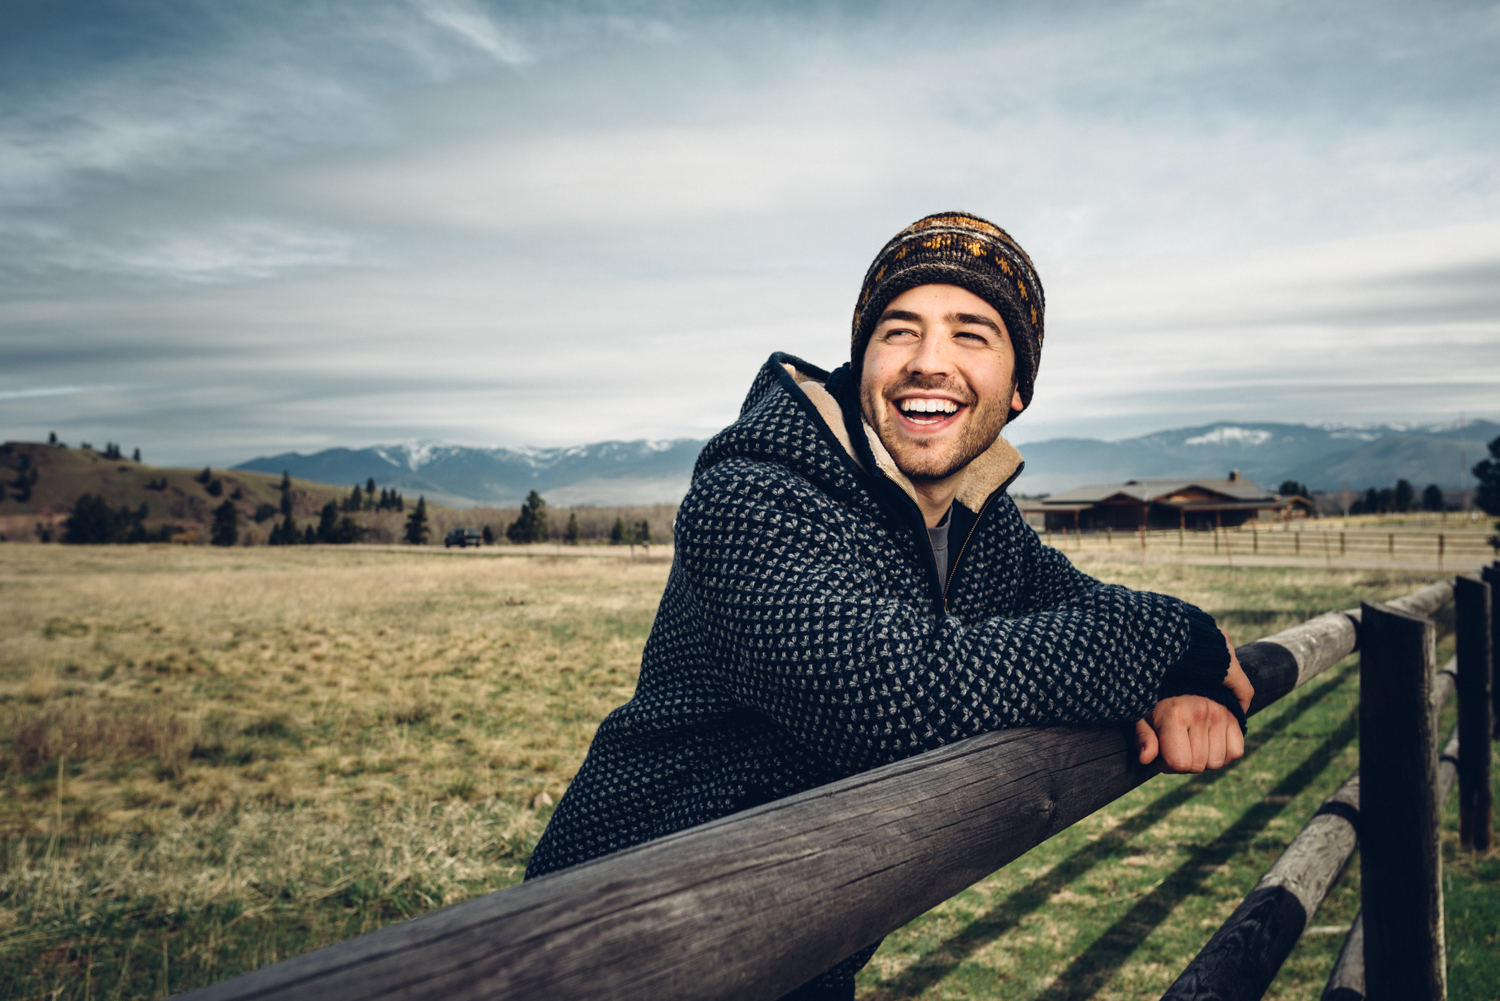 One of my favorite images from the shoot with the beautiful Missoula valley as a backdrop.